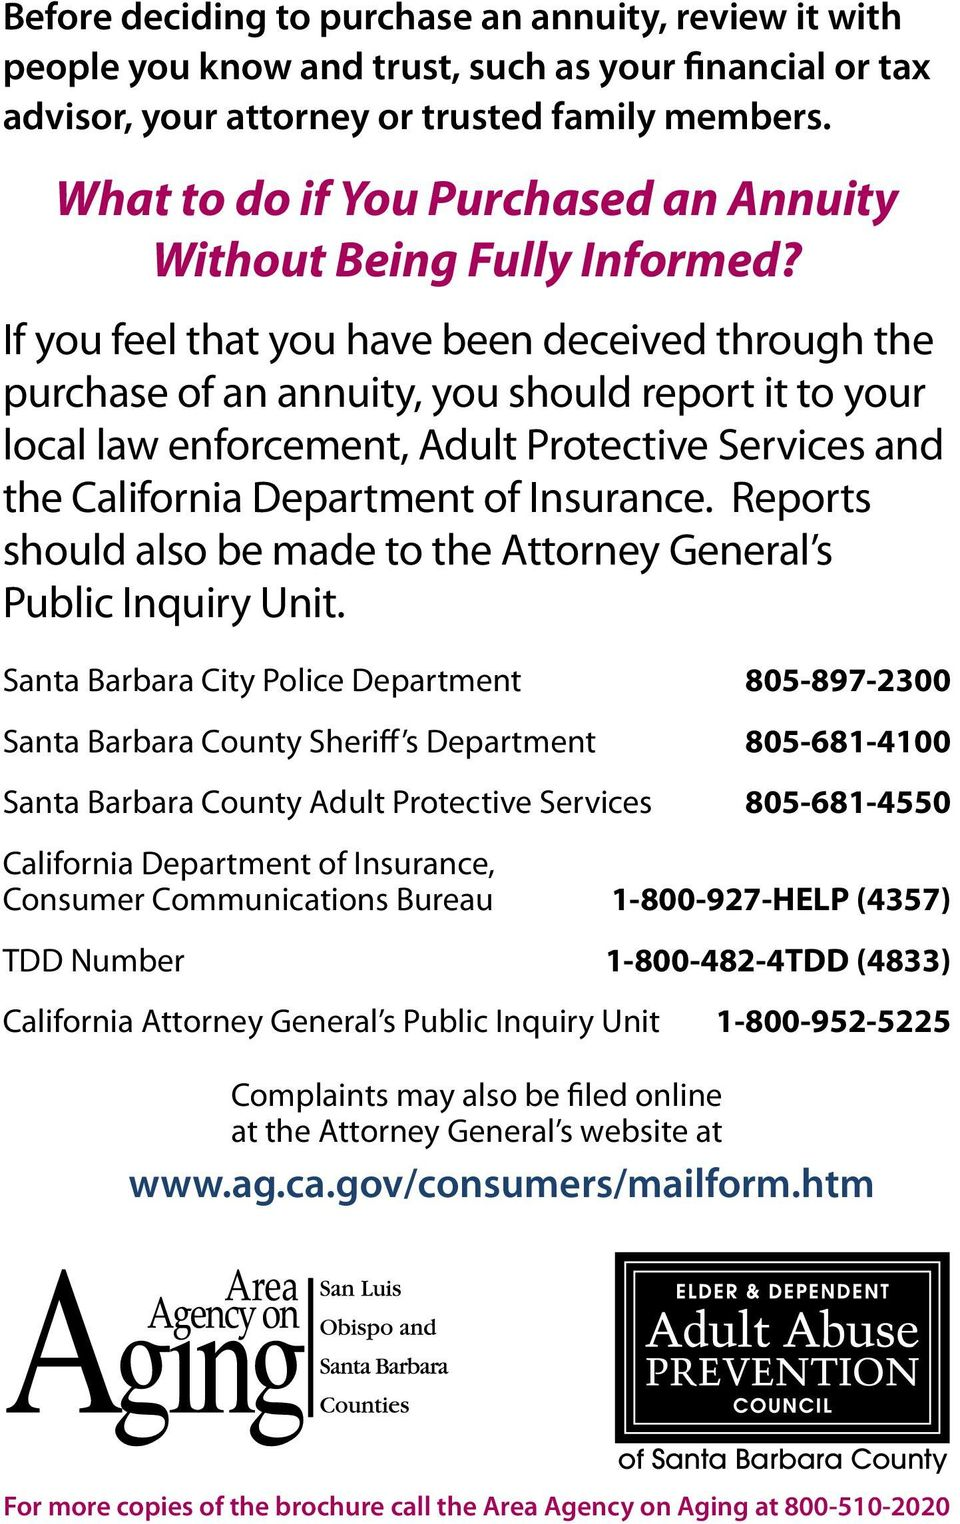 If you feel that you have been deceived through the purchase of an annuity, you should report it to your local law enforcement, Adult Protective Services and the California Department of Insurance.